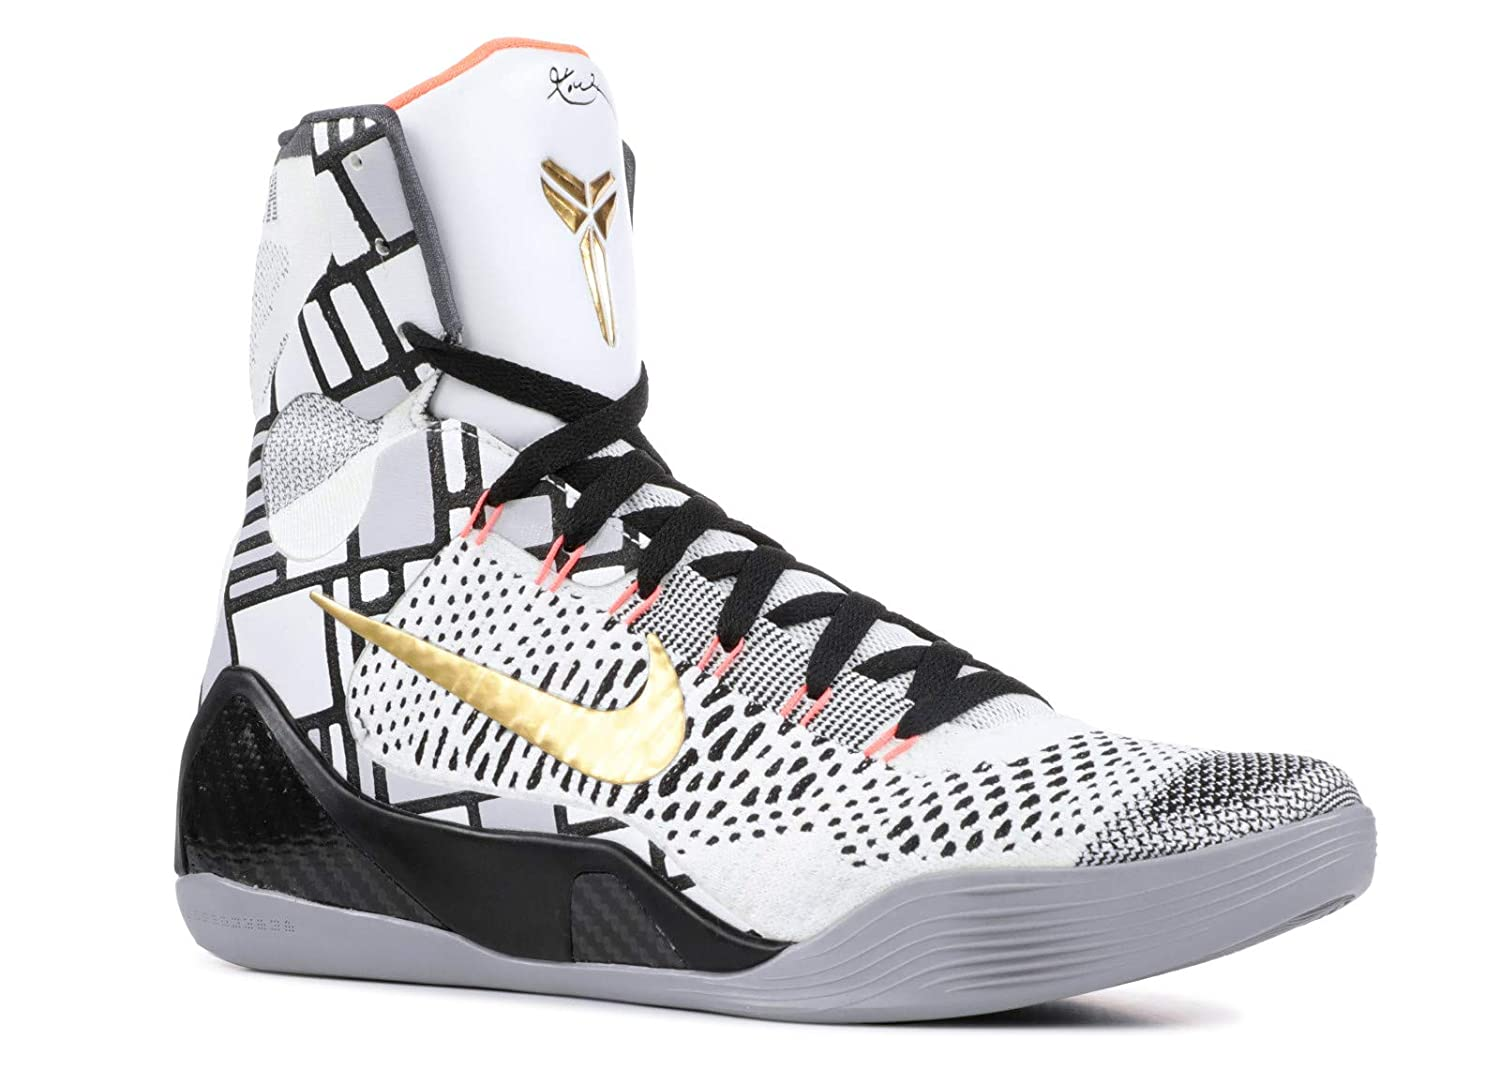 on sale 257a2 4009b Amazon.com   NIKE Kobe 9 Elite Gold Collection (630847-100)   Shoes